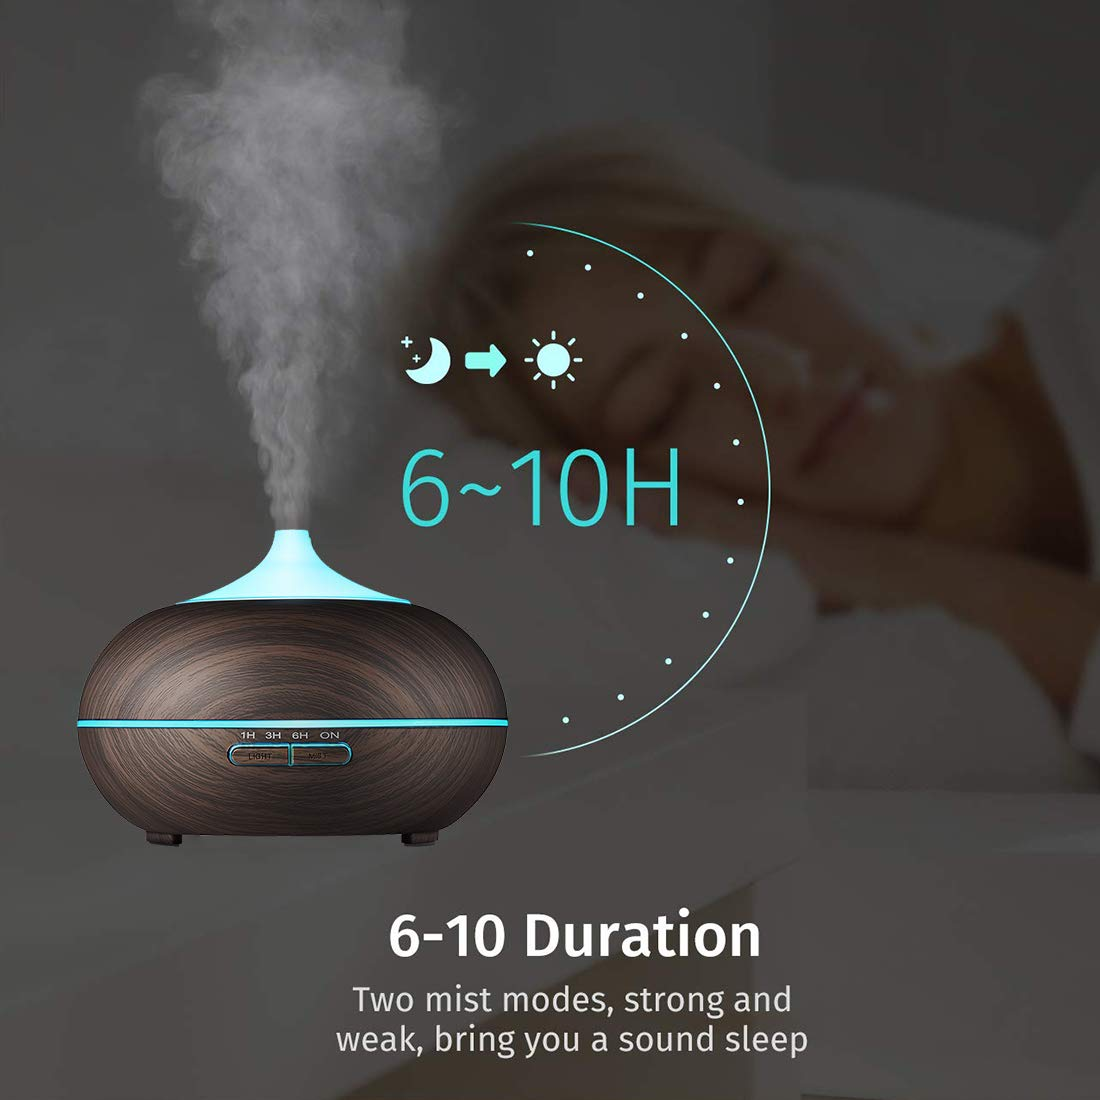 Aromatherapy Diffuser Aroma Essential Oil Diffuser 300ml Air Fragrance Ultrasonic Cool Mist Humidifier 7-Color LED Lights & 4 Timer Settings, Waterless Auto Shut-Off (Deep Brown)